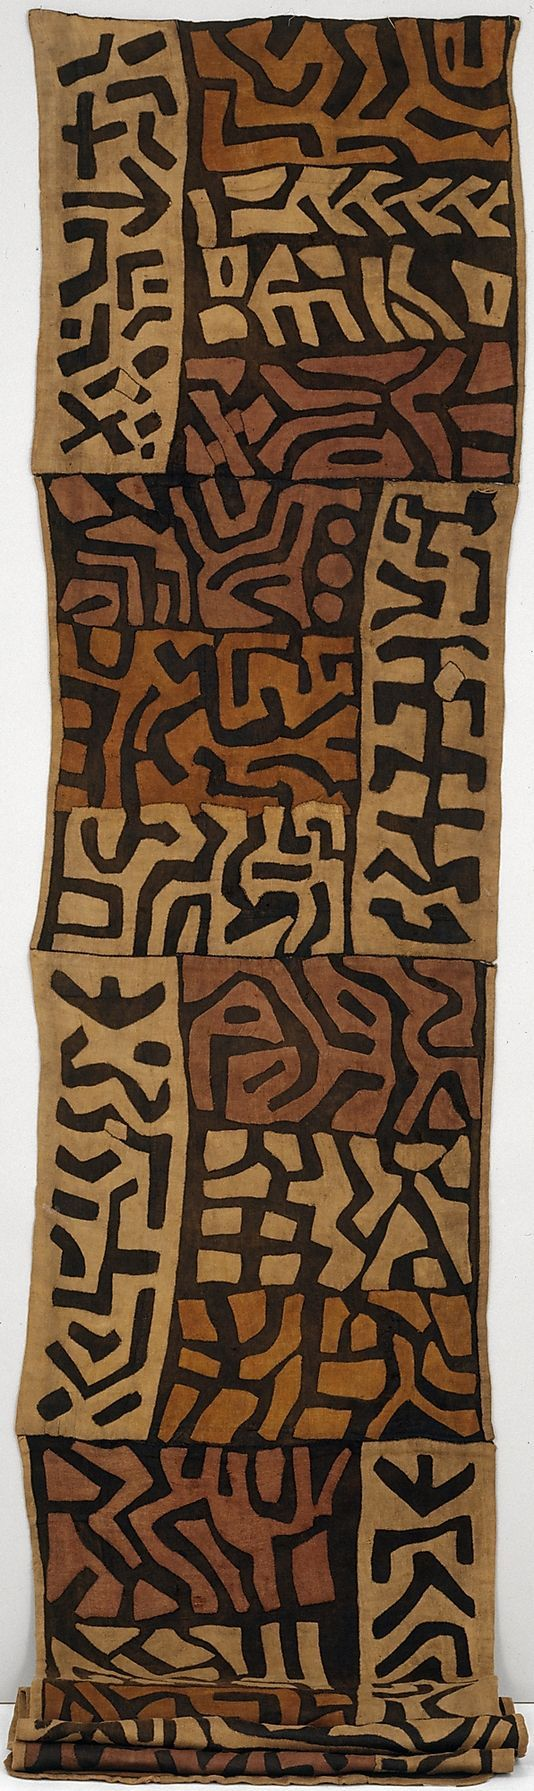 Africa | Ceremonial Skirt (Ntchak) from the Kuba people (Bushoong group) from the Kasai River Region of the DR Congo | Raffia palm fiber with natural dyes | ca. late 19th century: